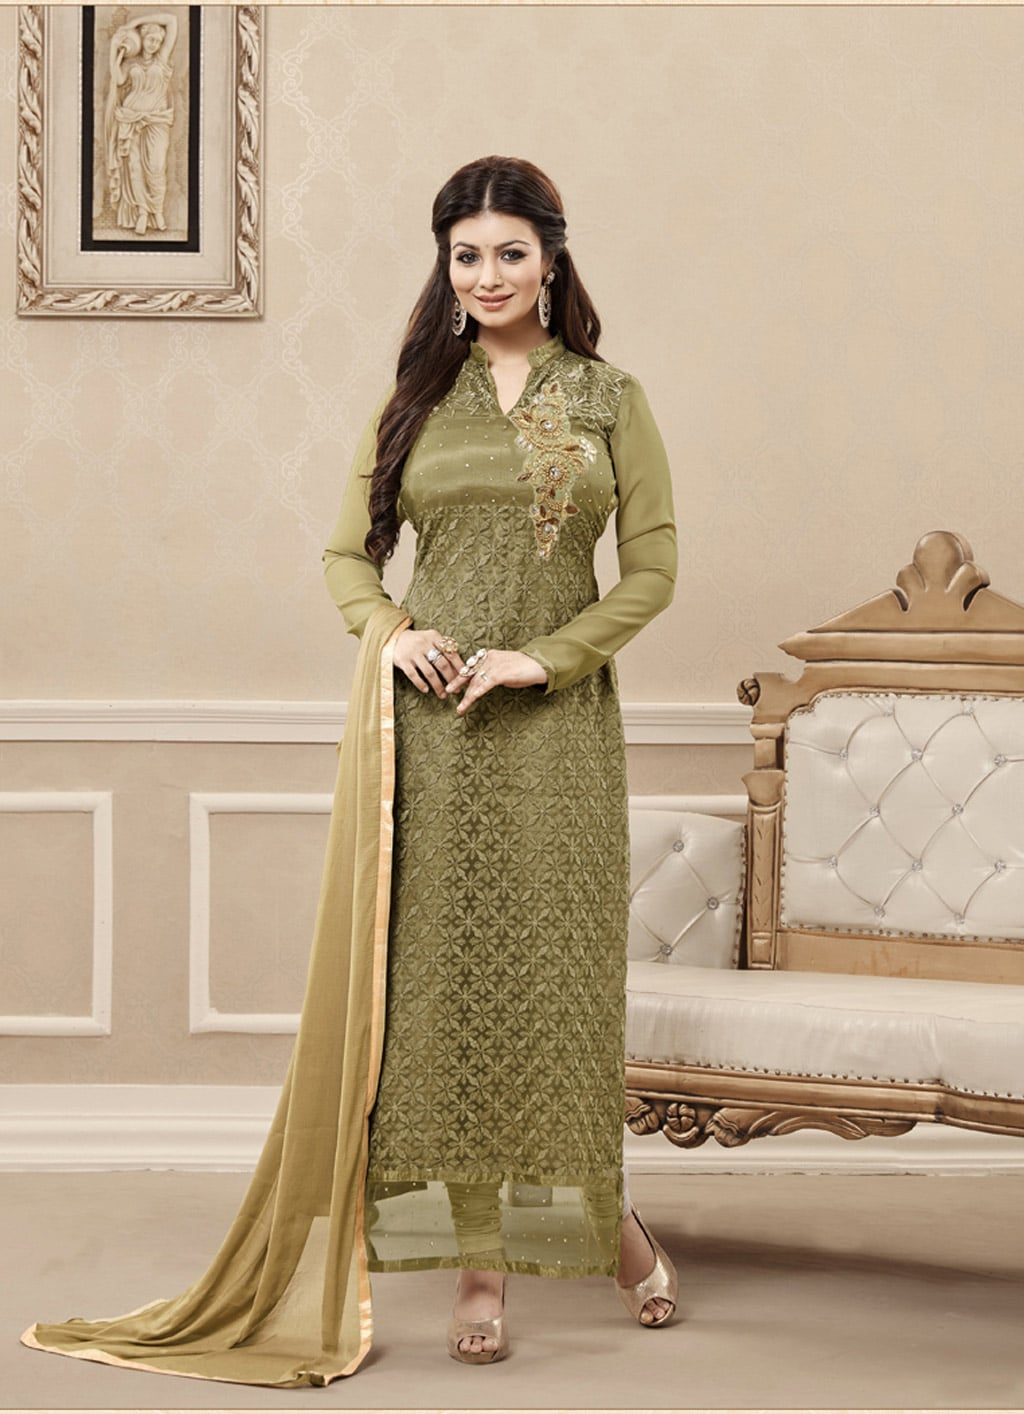 c286a89a528c 25 Latest Trends in Pakistani Party Dresses 2018 - Dresses - Crayon